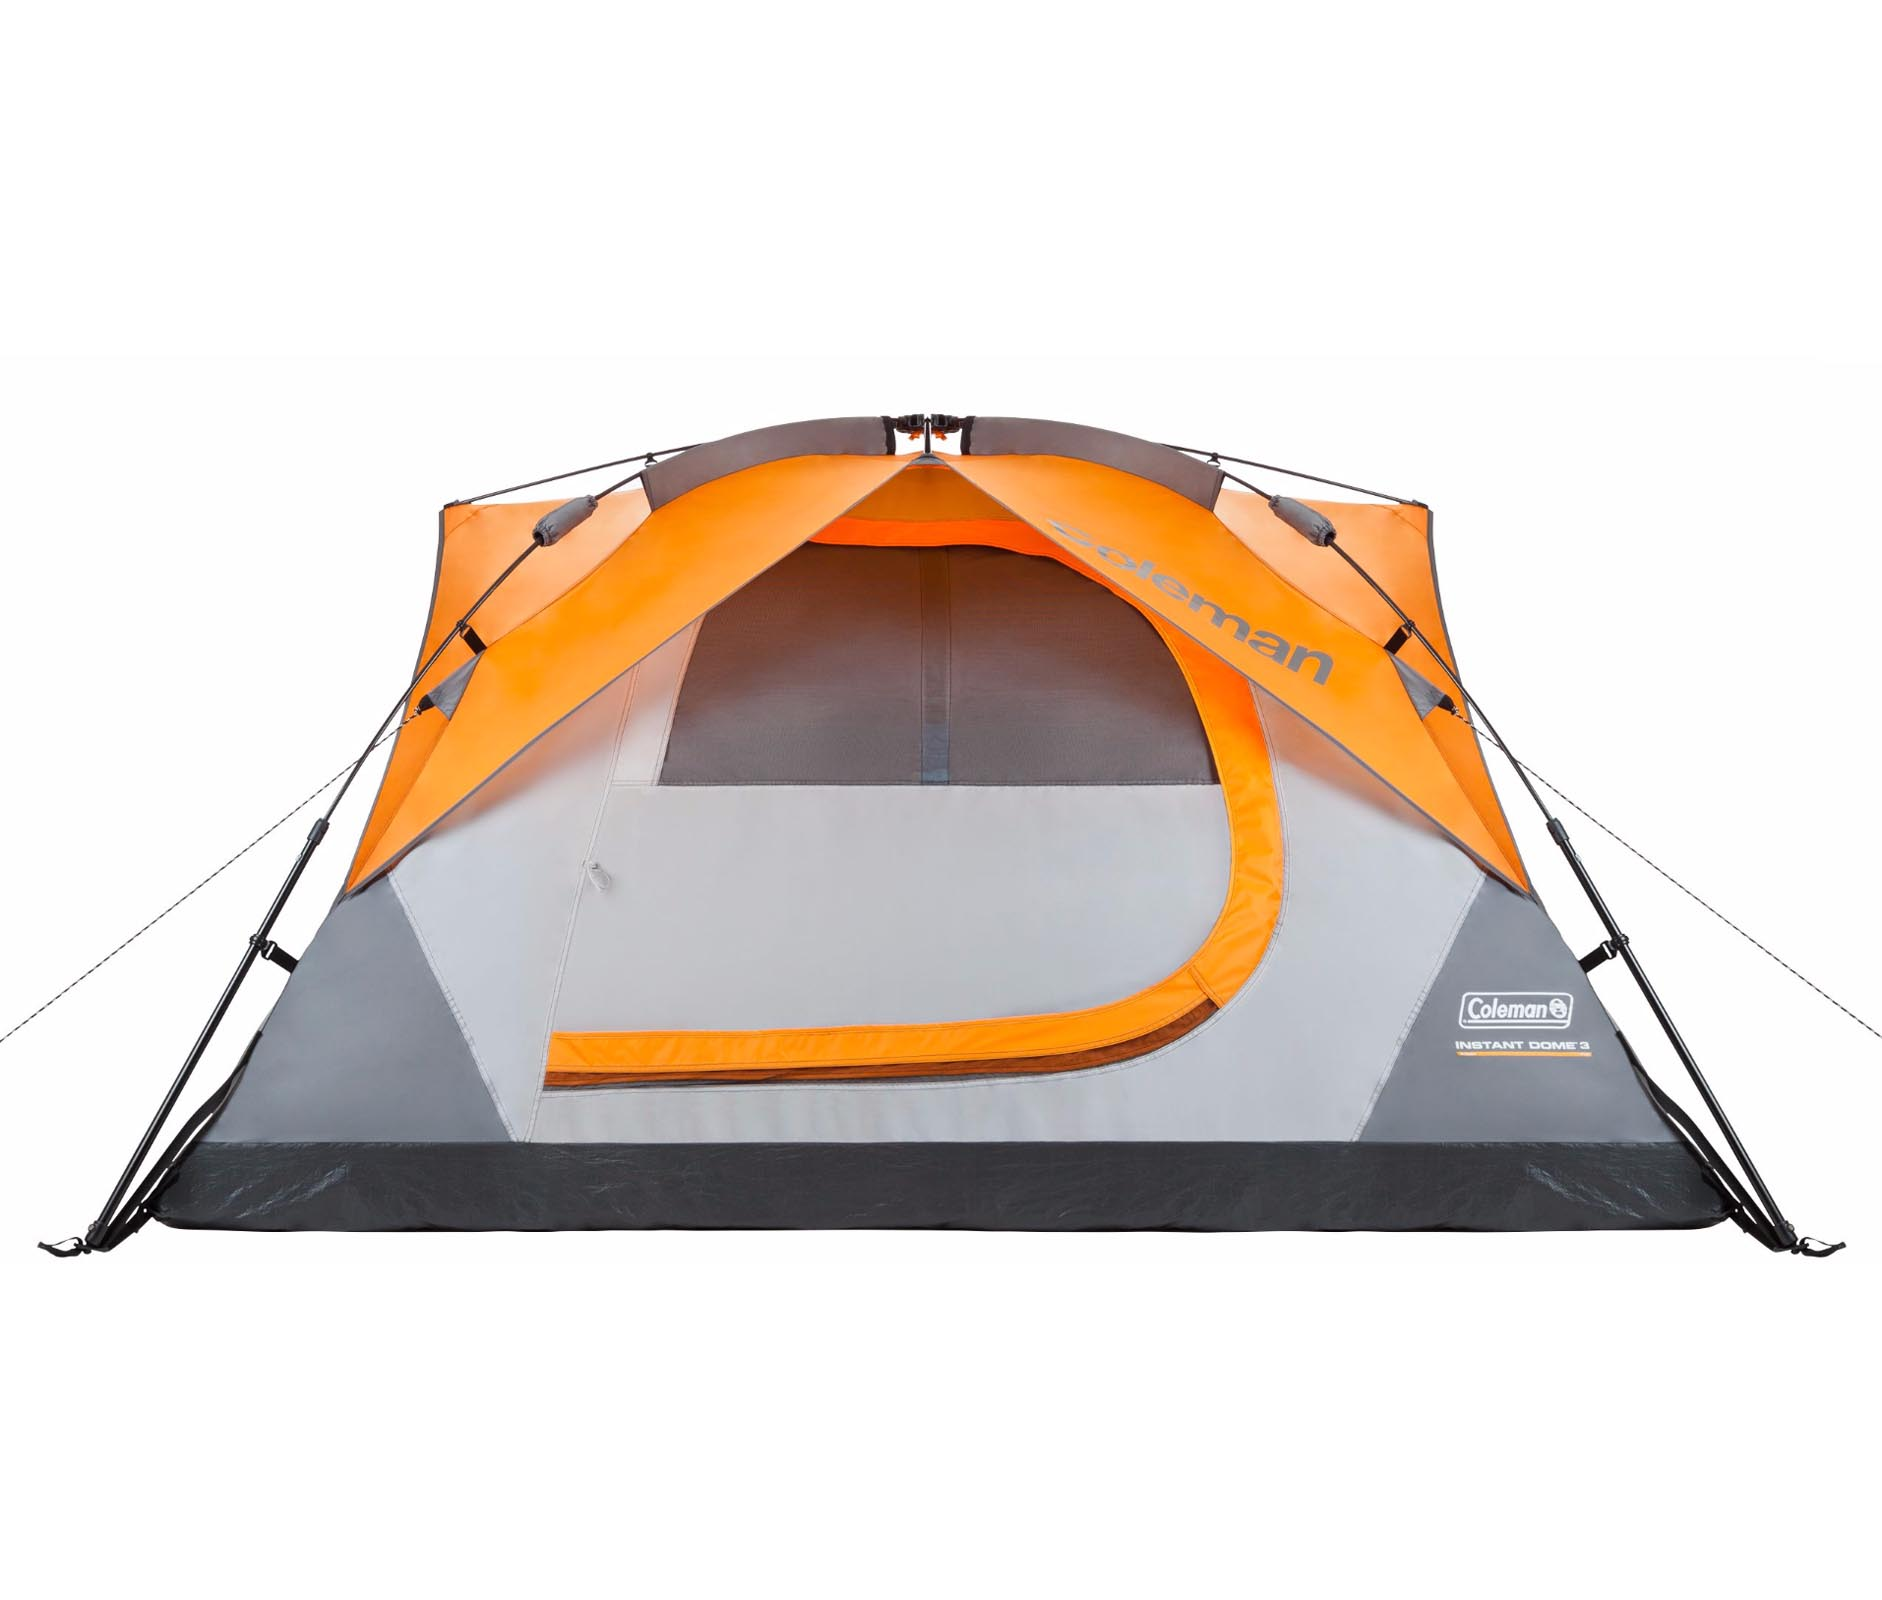 Coleman Signature 3 Person Instant Dome C&ing Tent w/Built-In Rainfly | 7 x 7u0027 - Walmart.com  sc 1 st  Walmart & Coleman Signature 3 Person Instant Dome Camping Tent w/Built-In ...